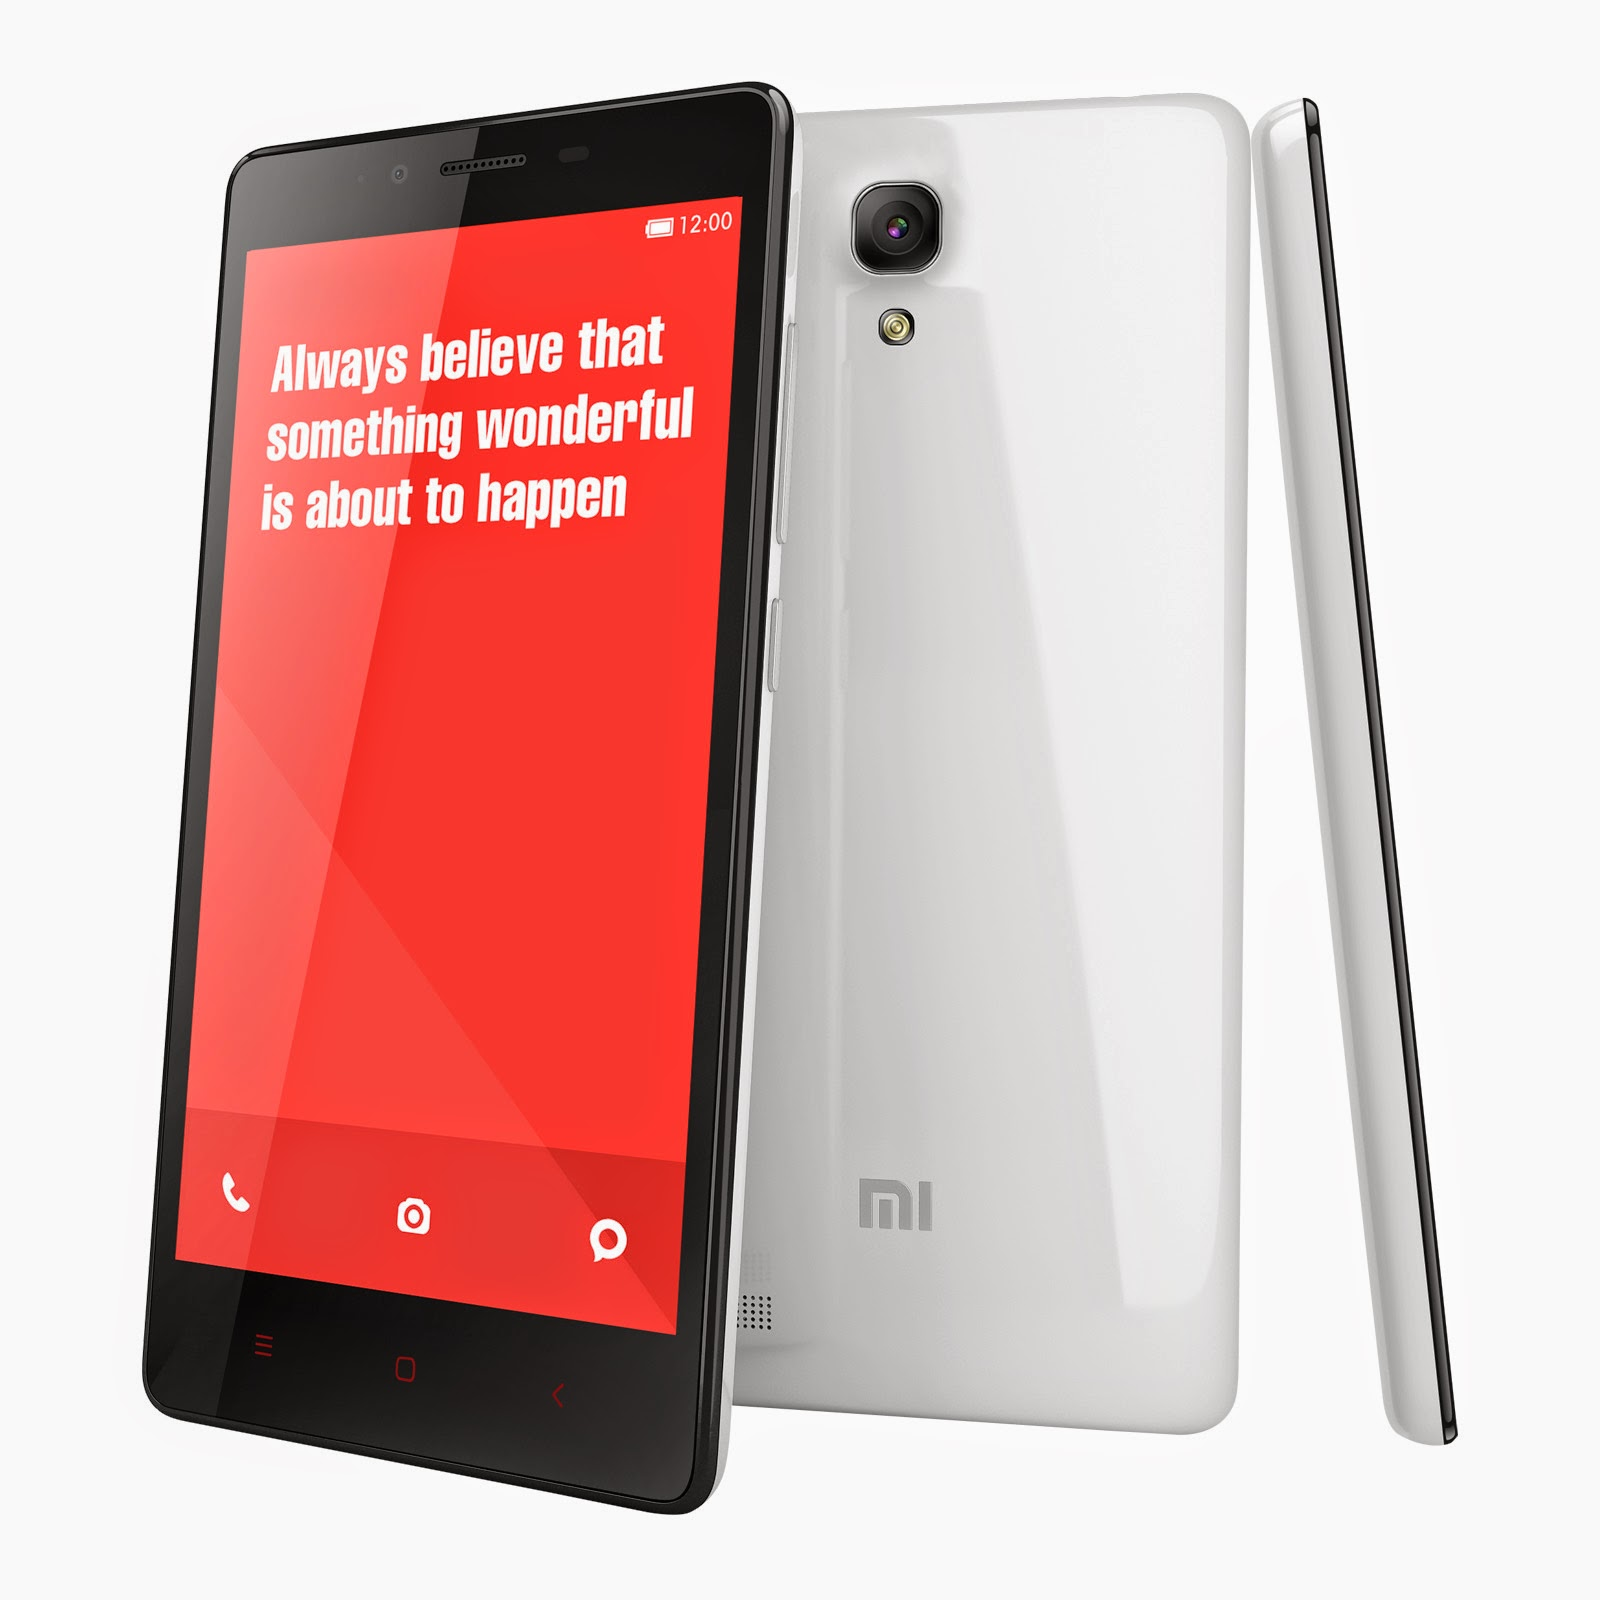 redmi note india, Xiaomi, Xiaomi Flipkart, Xiaomi Redmi Note, Xiaomi Redmi Note India Launch, Xiaomi Redmi Note Price,